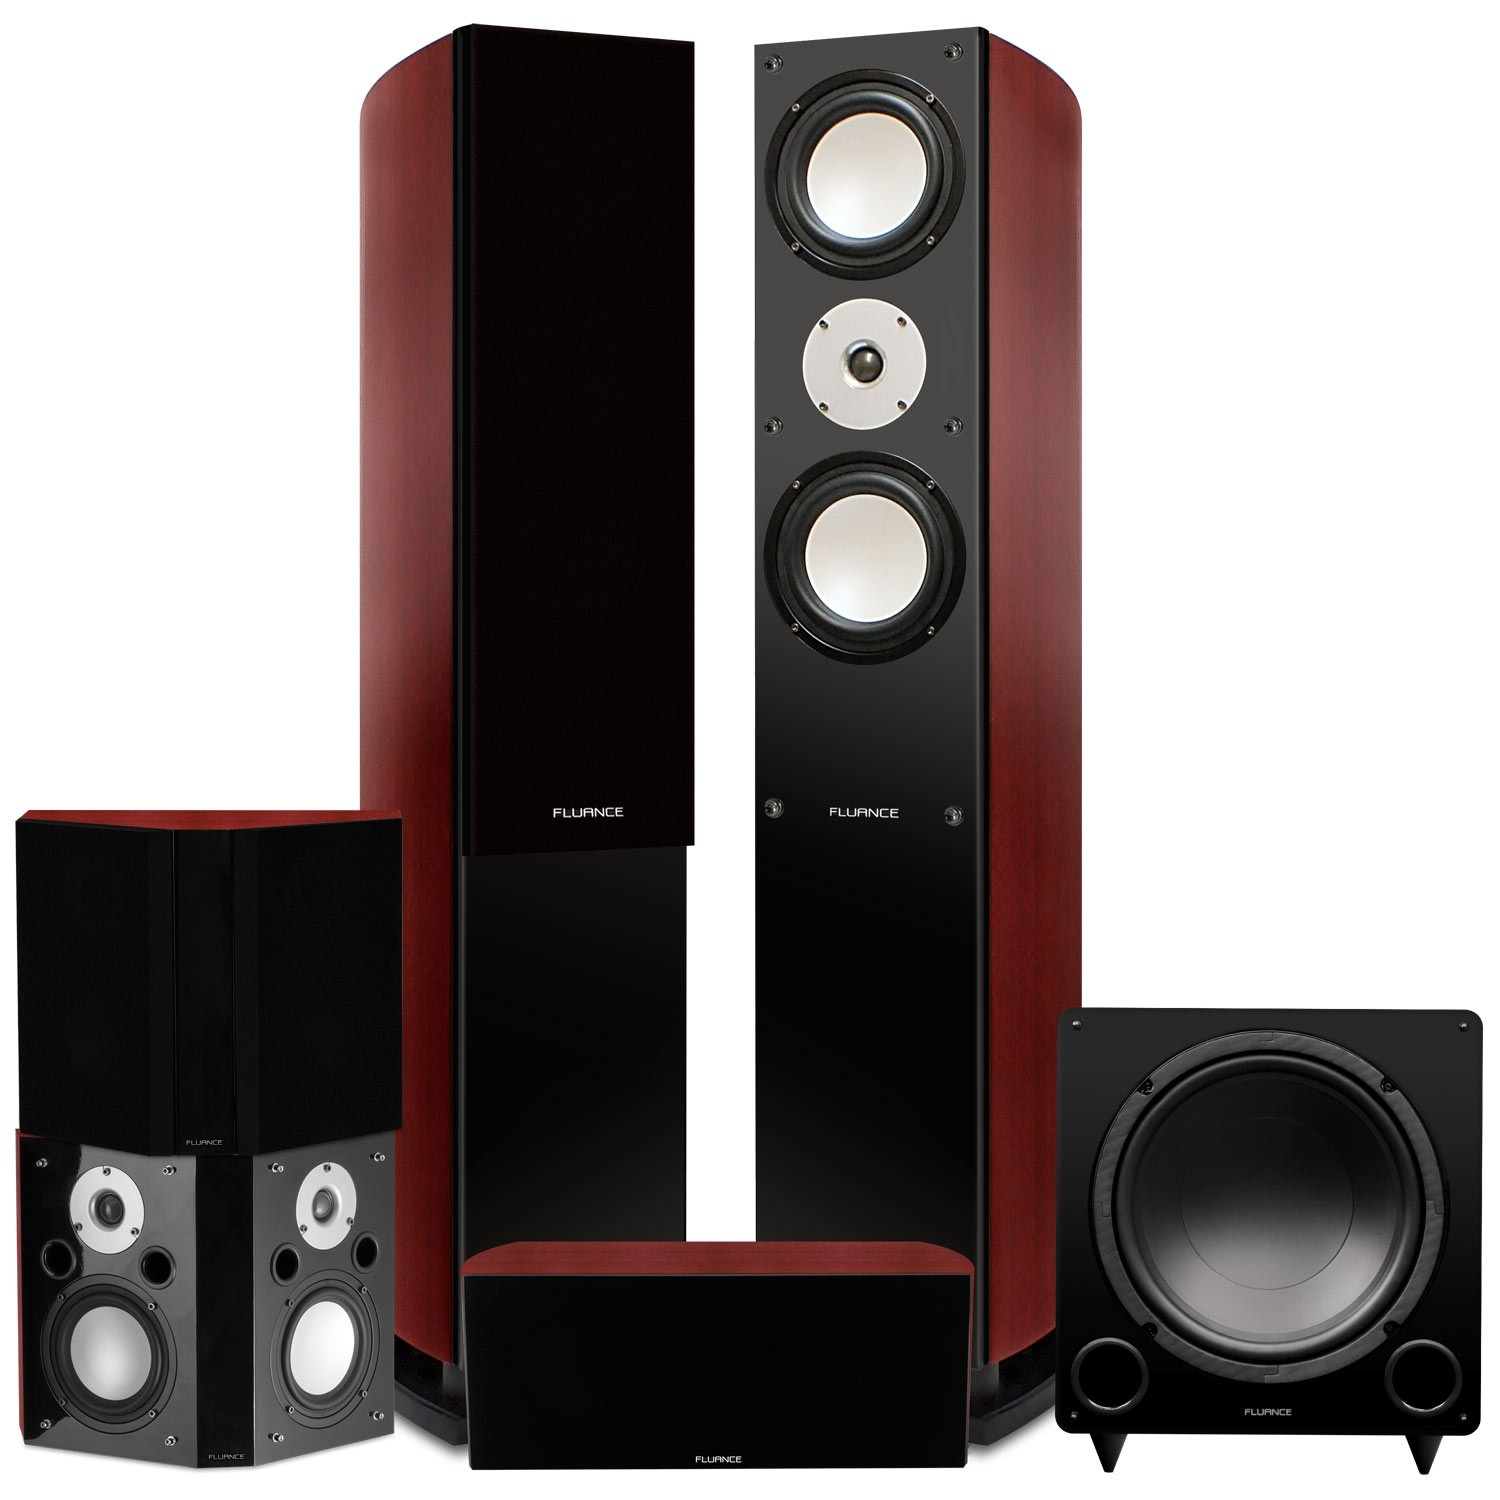 Reference Series Surround Sound Home Theater 5.1 Channel Speaker System - Mahogany